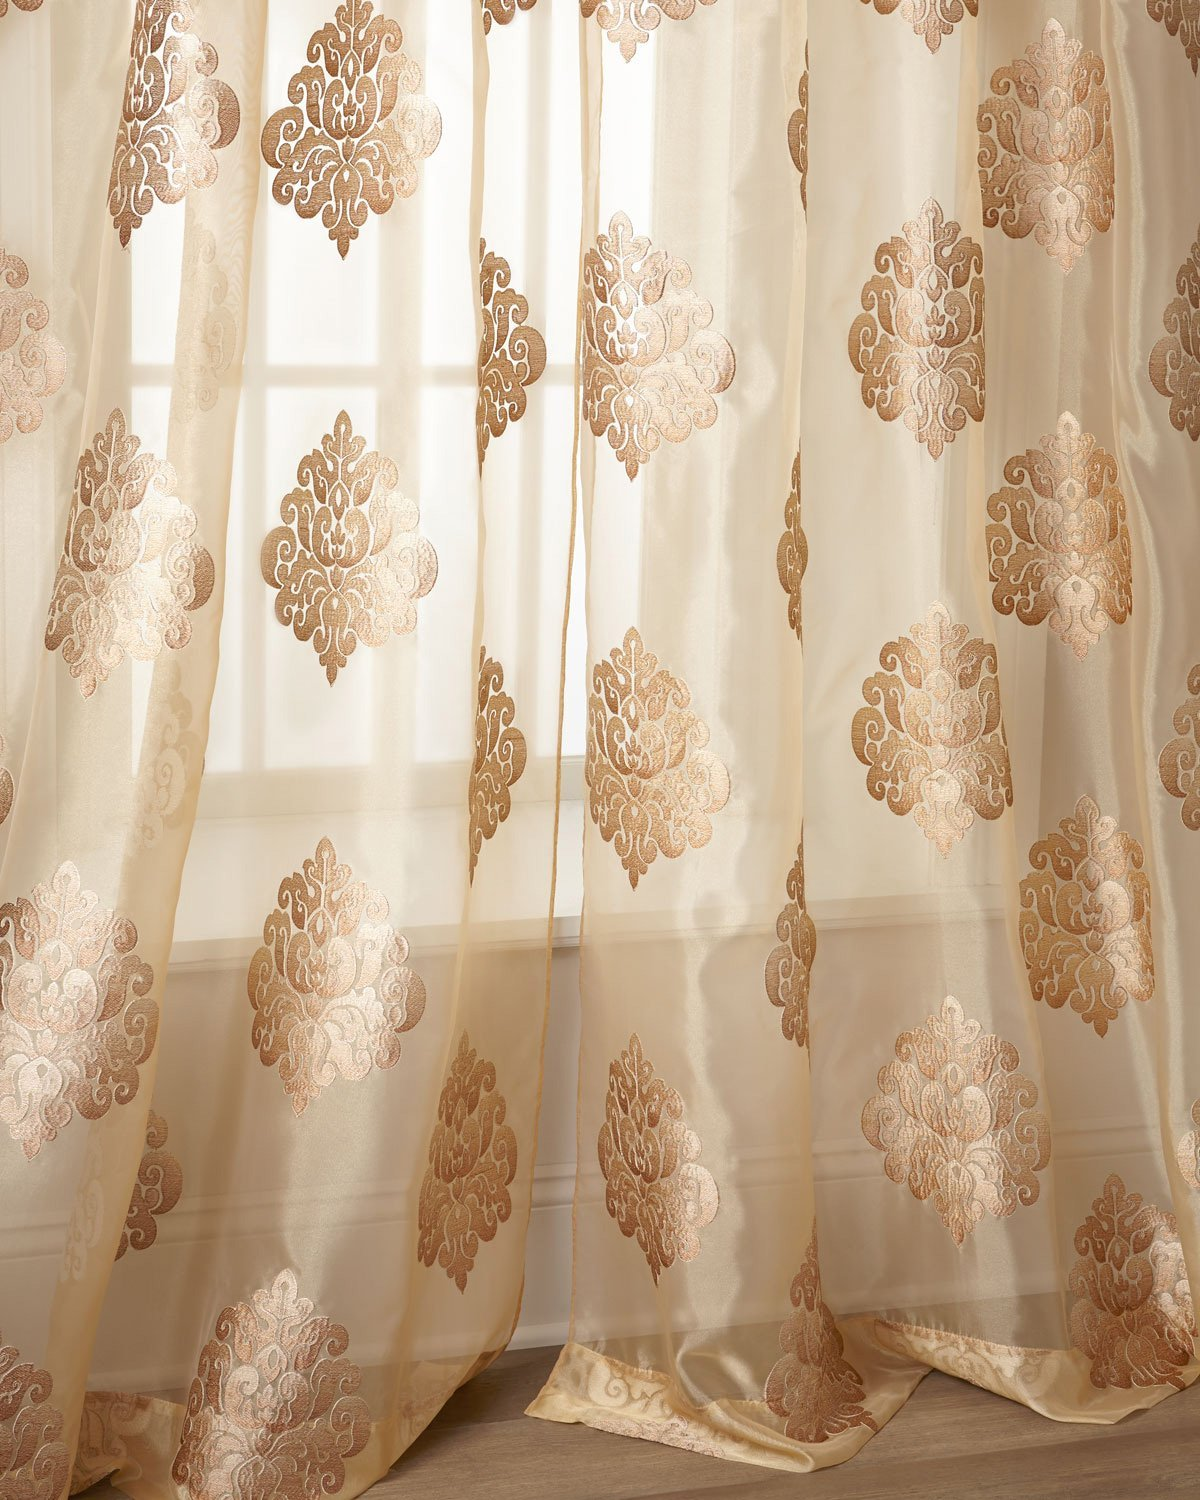 Luxury Interior Home Decorating Ideas with Embroidered Curtains: Embroidered Silk Curtain Fabric | Raspberry Striped Curtains | Embroidered Curtains